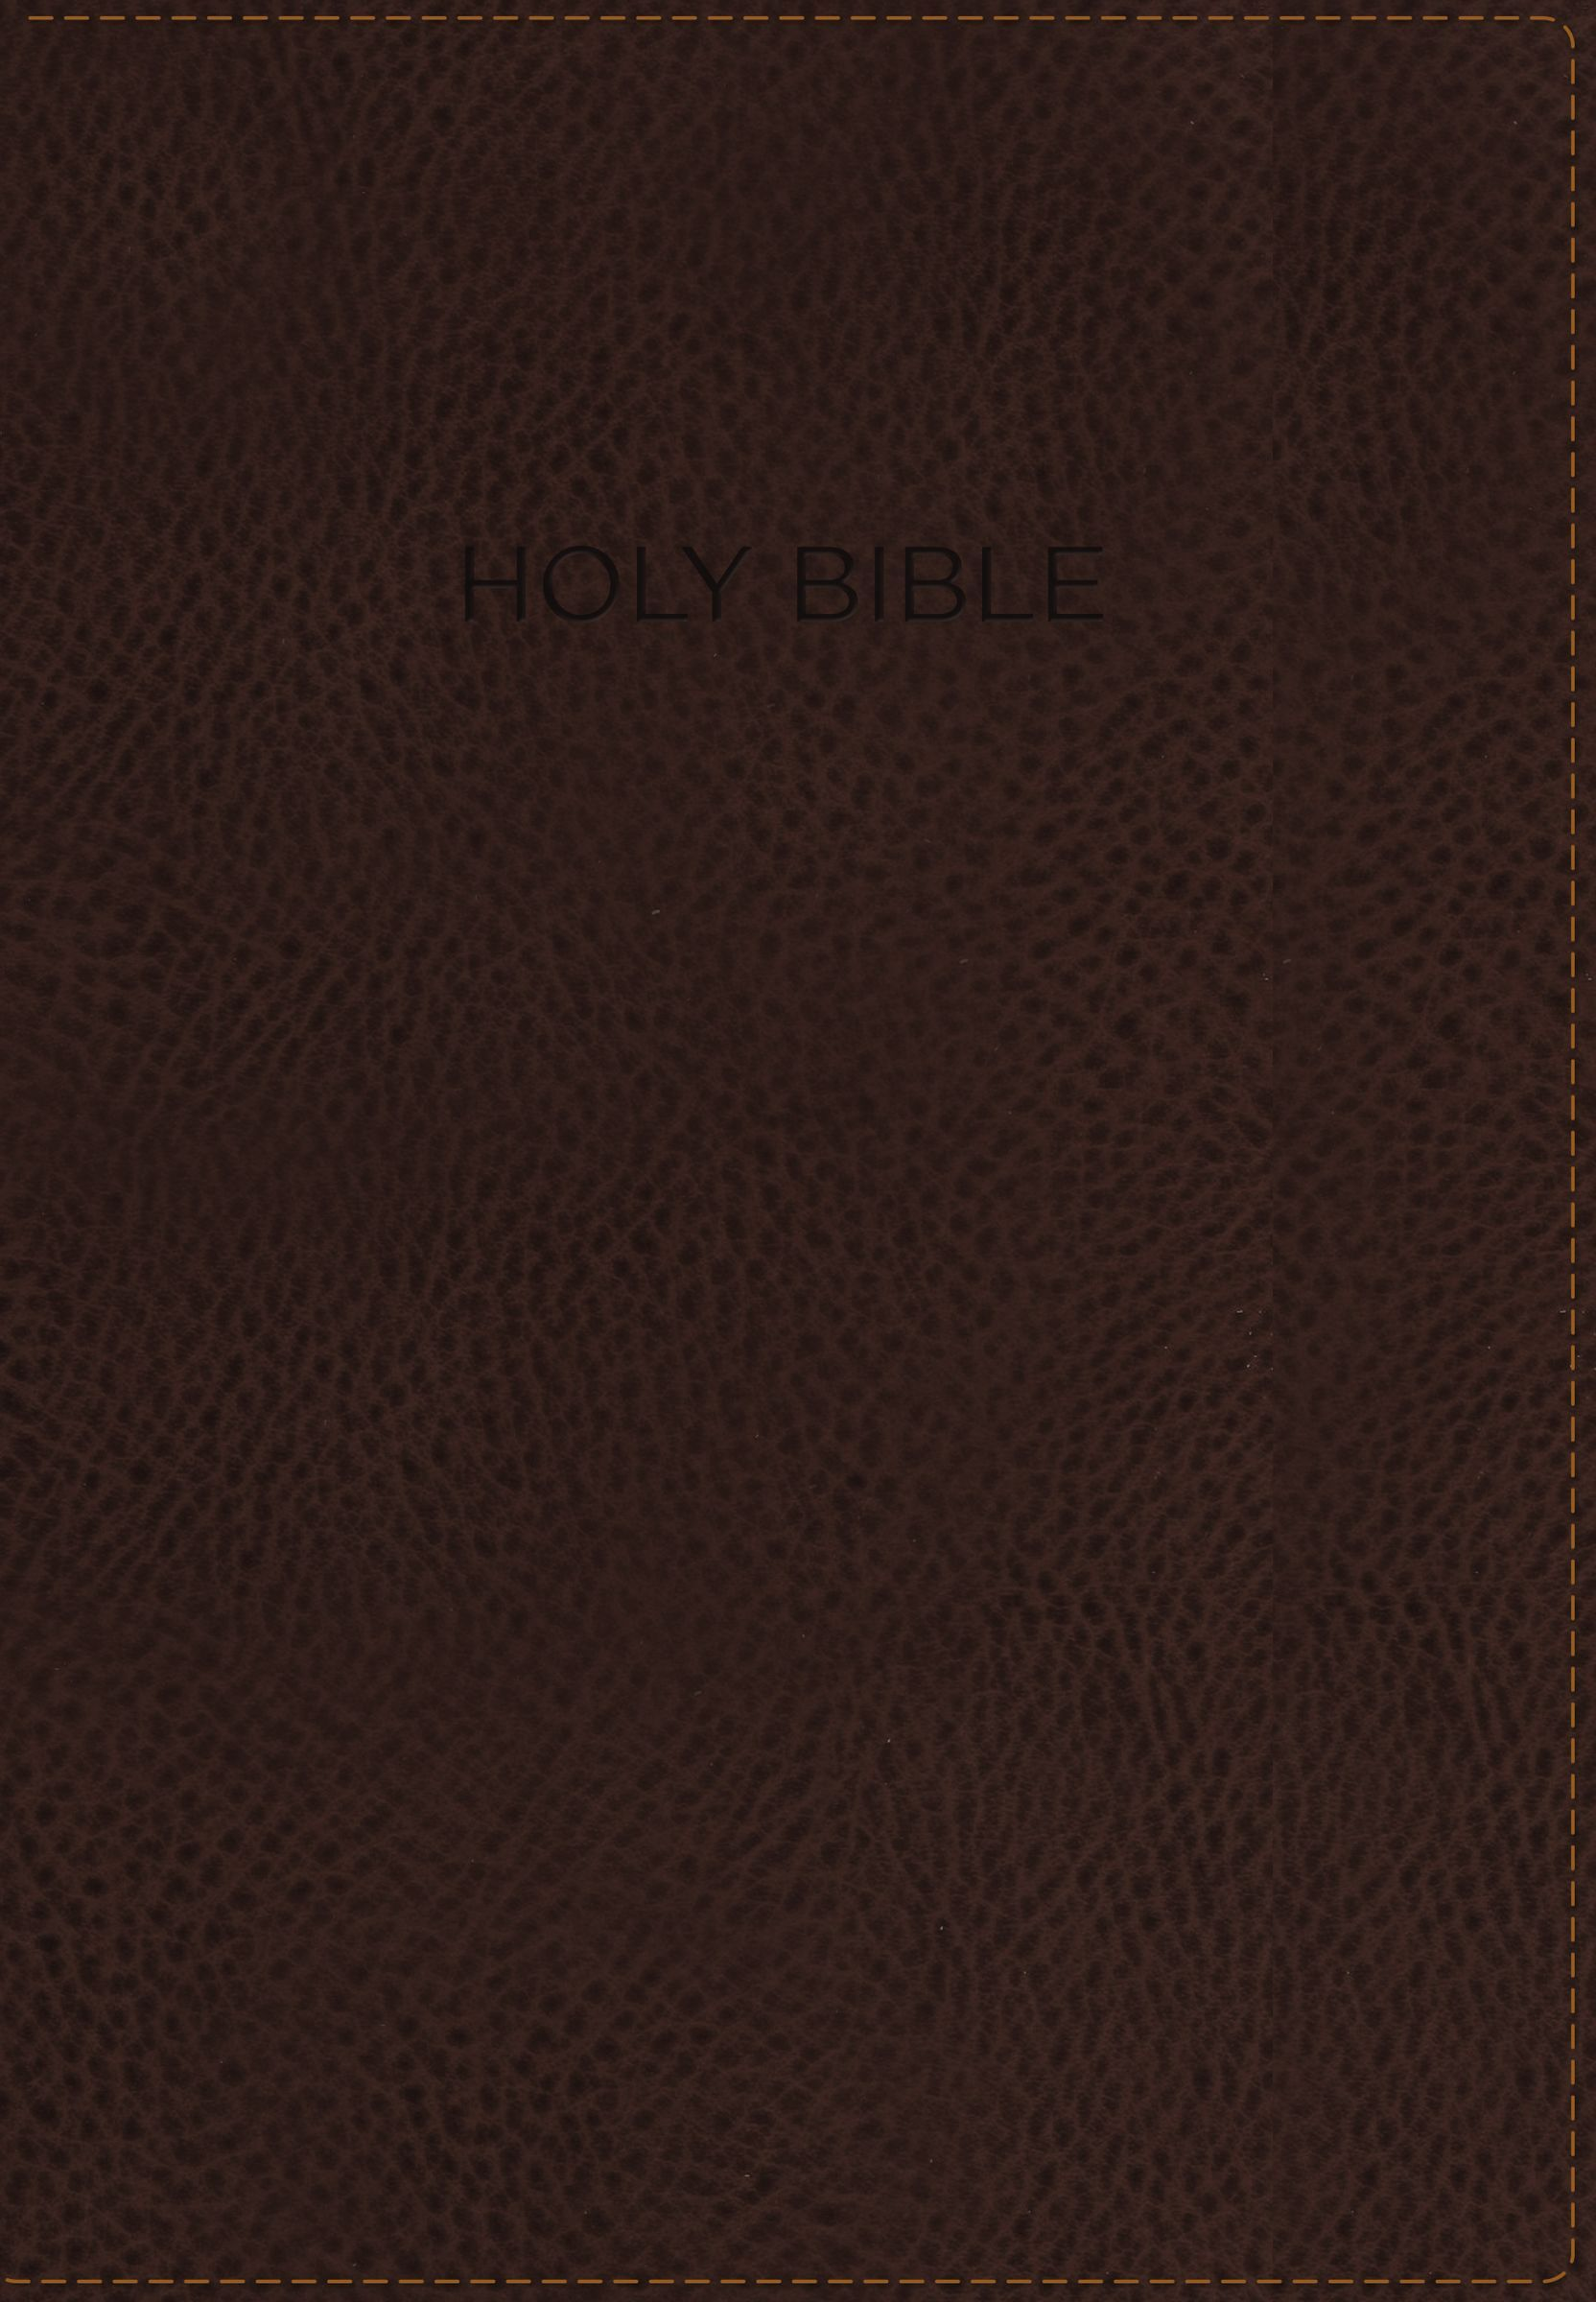 NIV, Foundation Study Bible, Leathersoft, Brown, Indexed, Red Letter Edition